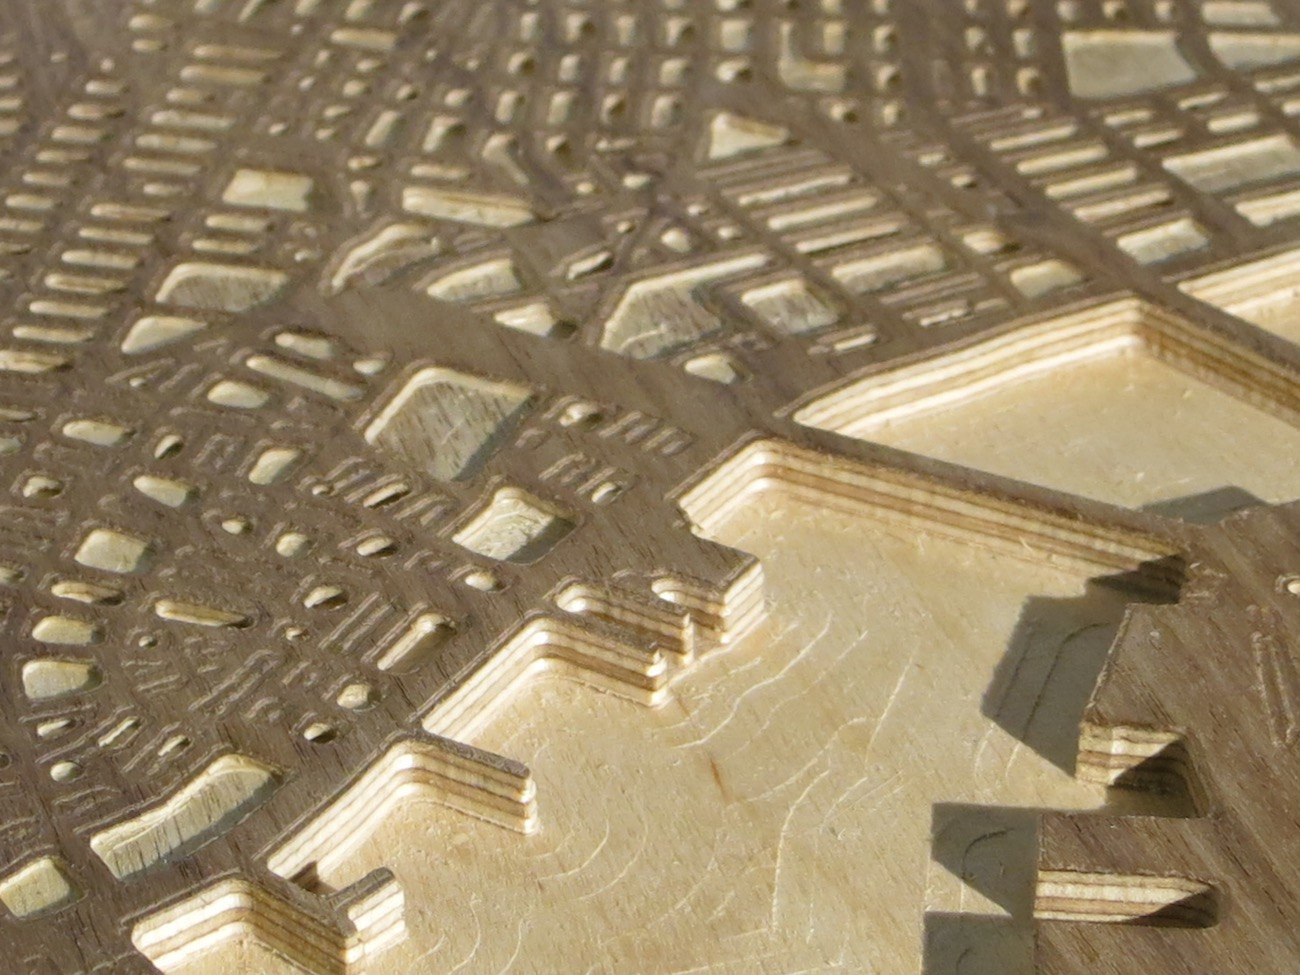 carved-3d-wooden-street-maps-2